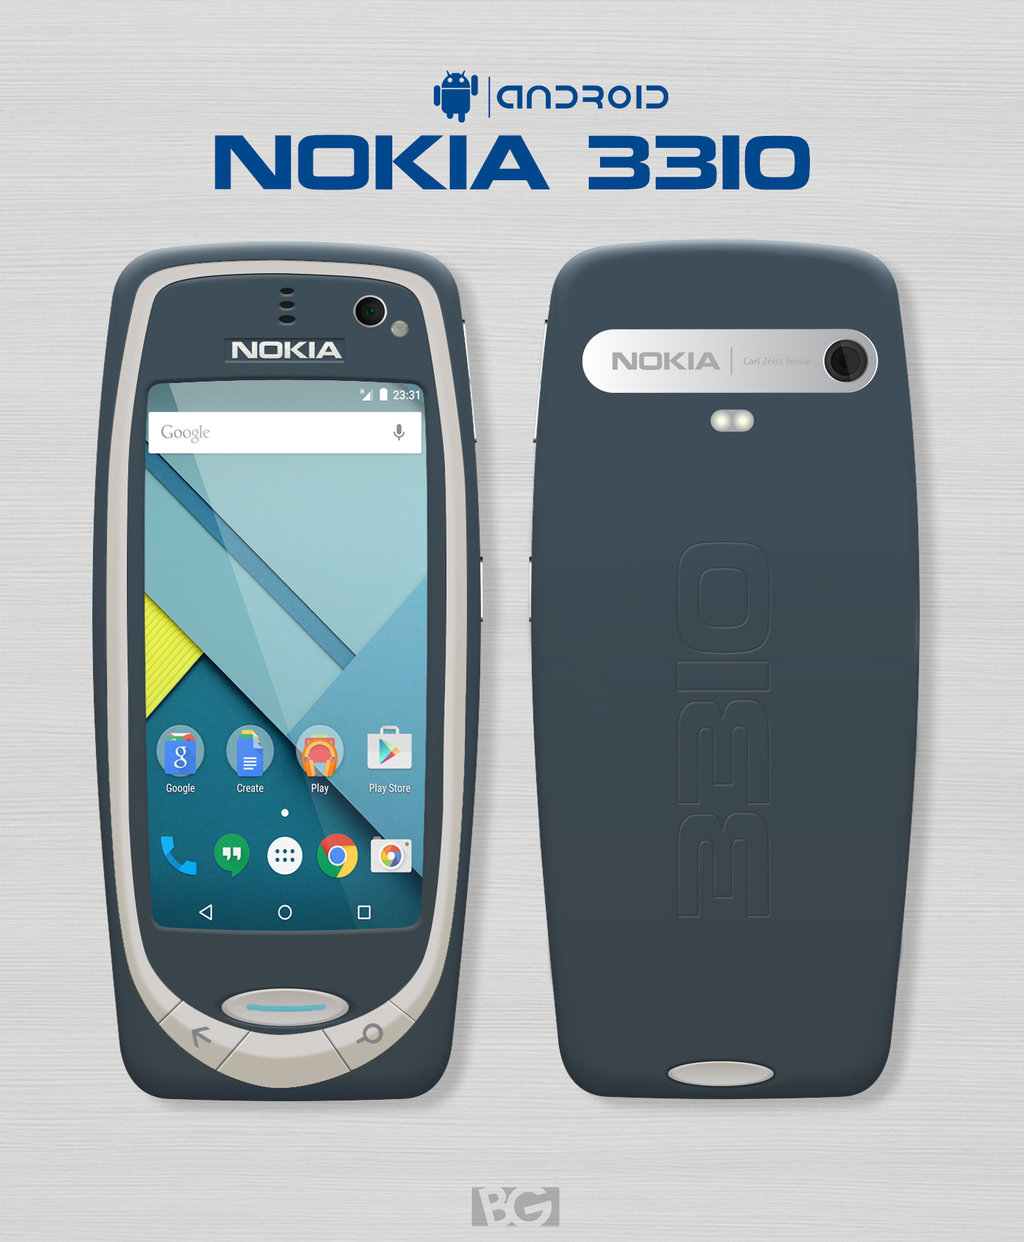 Is Nokia 3310 Coming With Android No It Is Not